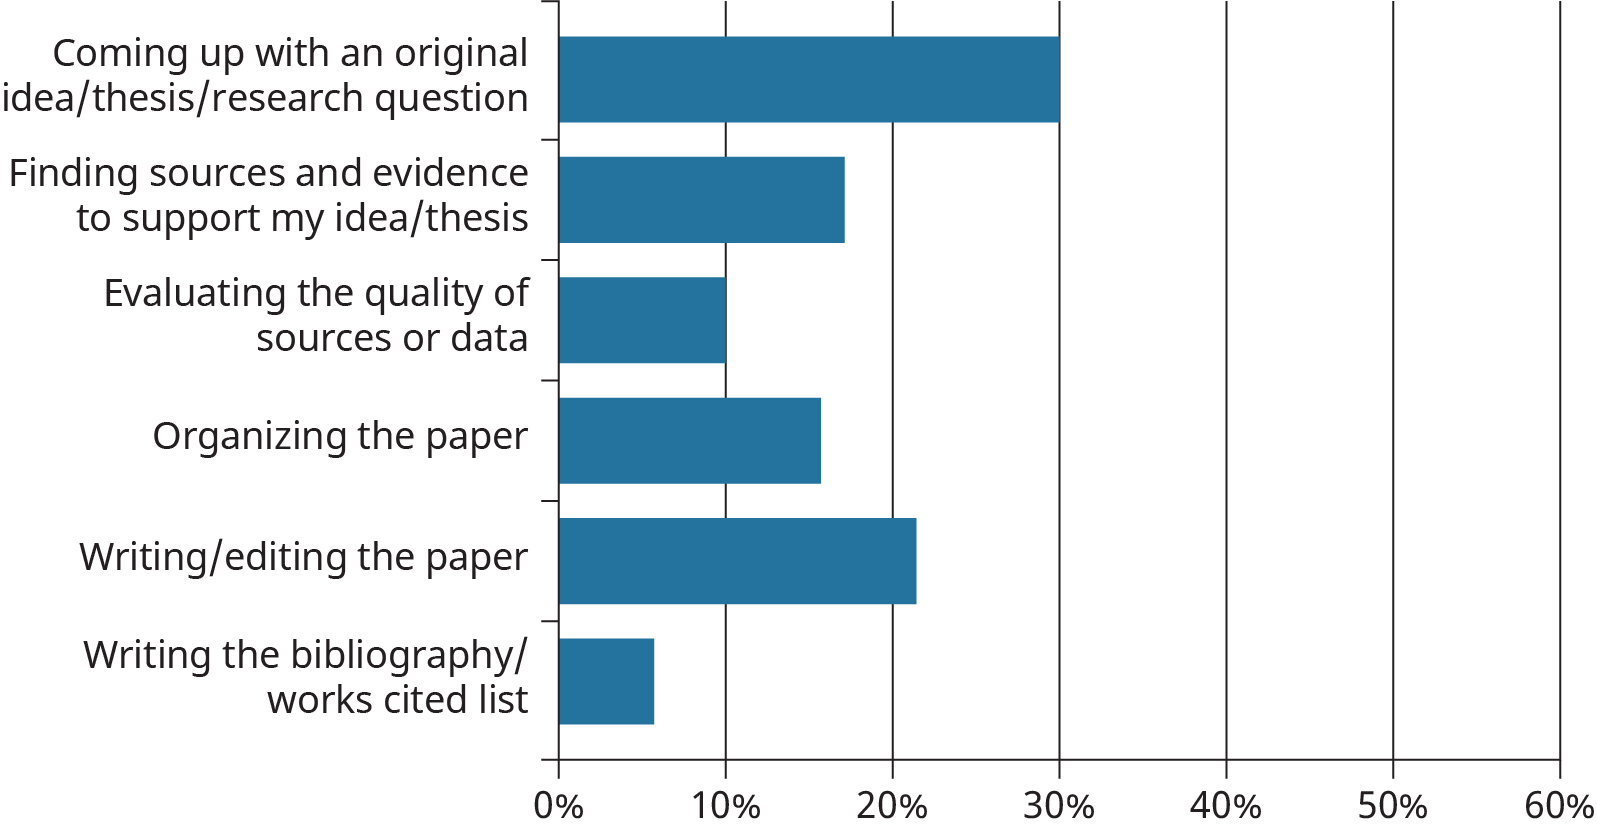 A horizontal bar graph plots the responses of a students' survey determining the most challenging aspect when writing a paper for a course.